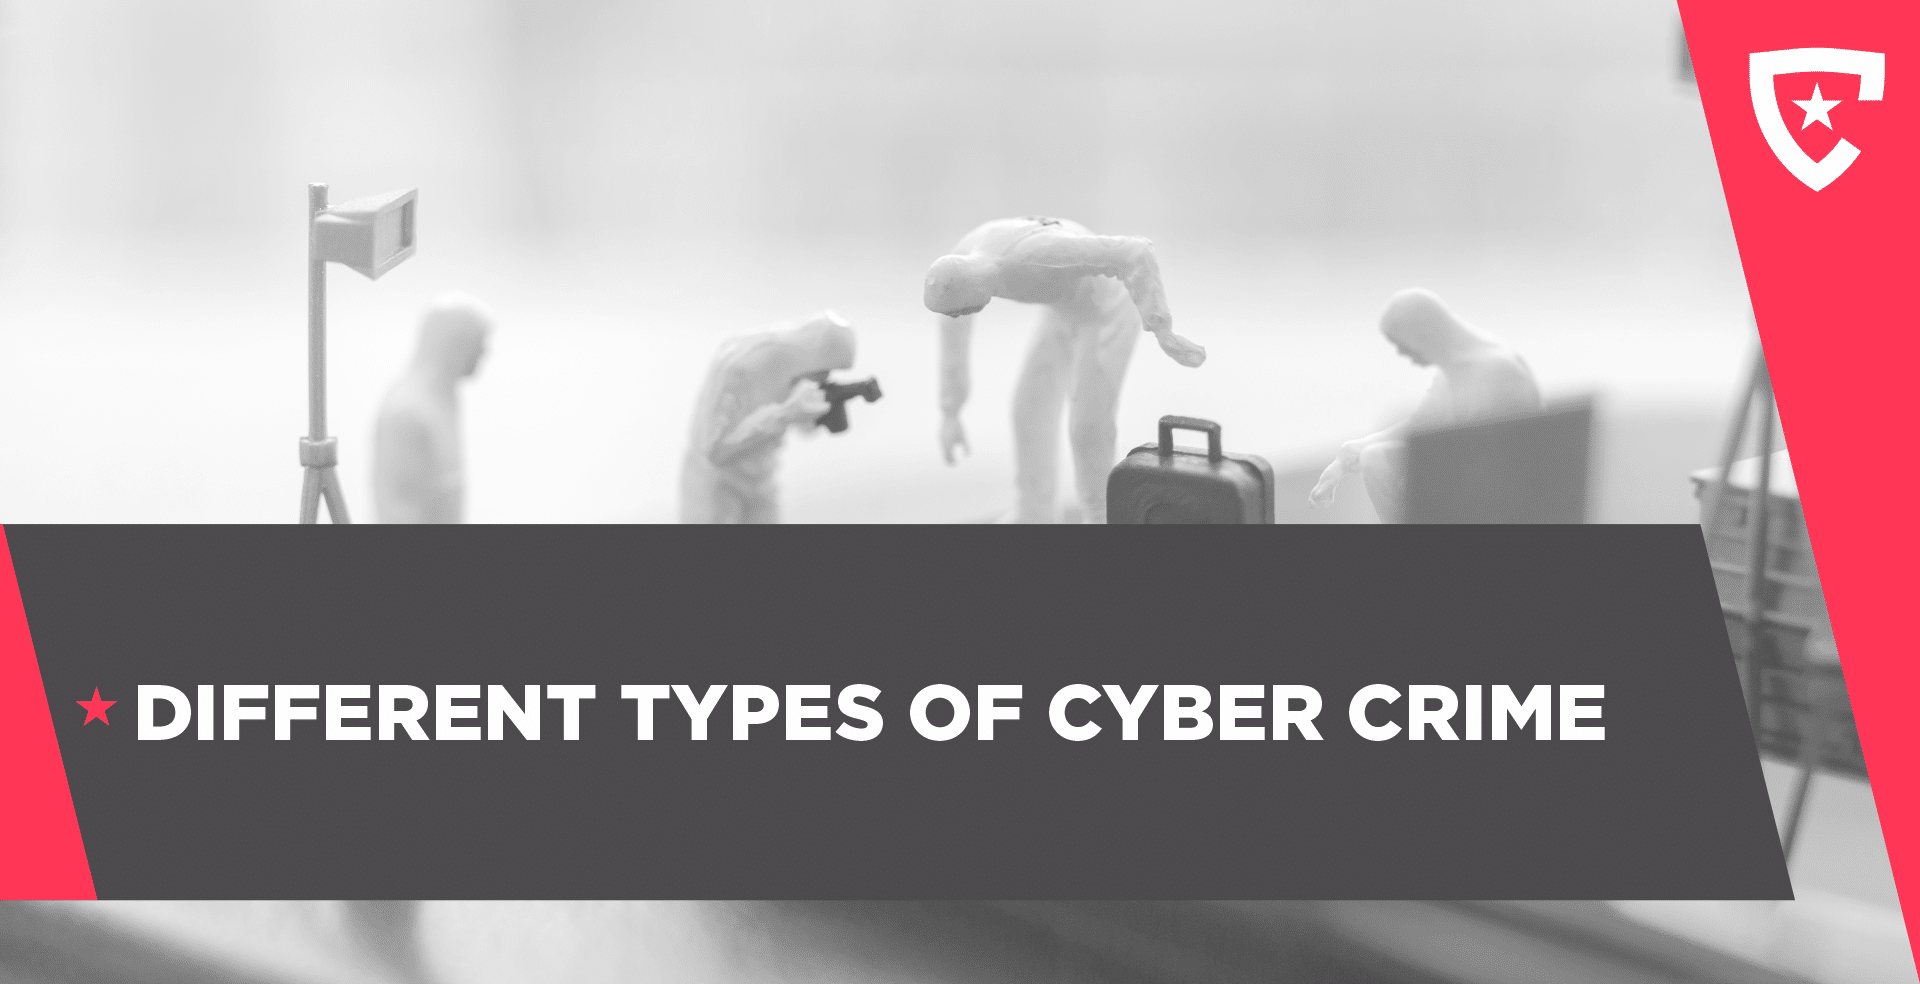 Different Types of Cyber Crimes